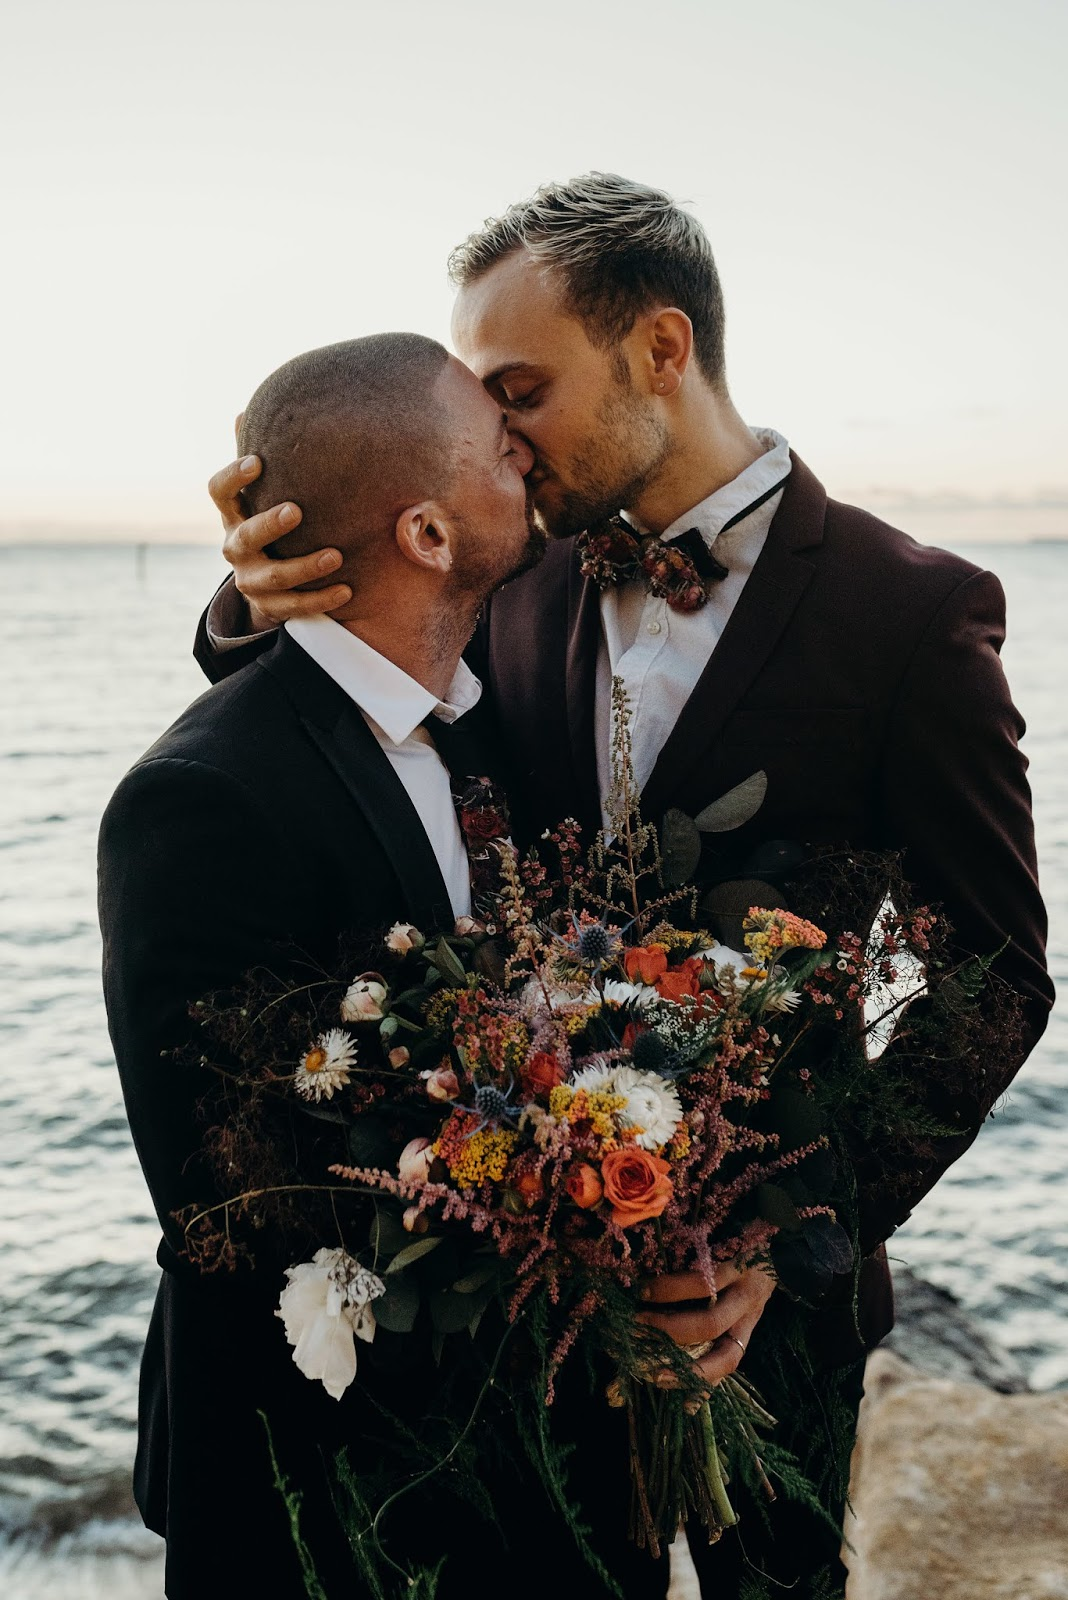 SAME SEX MARRIAGES MELBOURNE WEDDING INSPIRATION BEACH WEDDING FLORALS CAKES